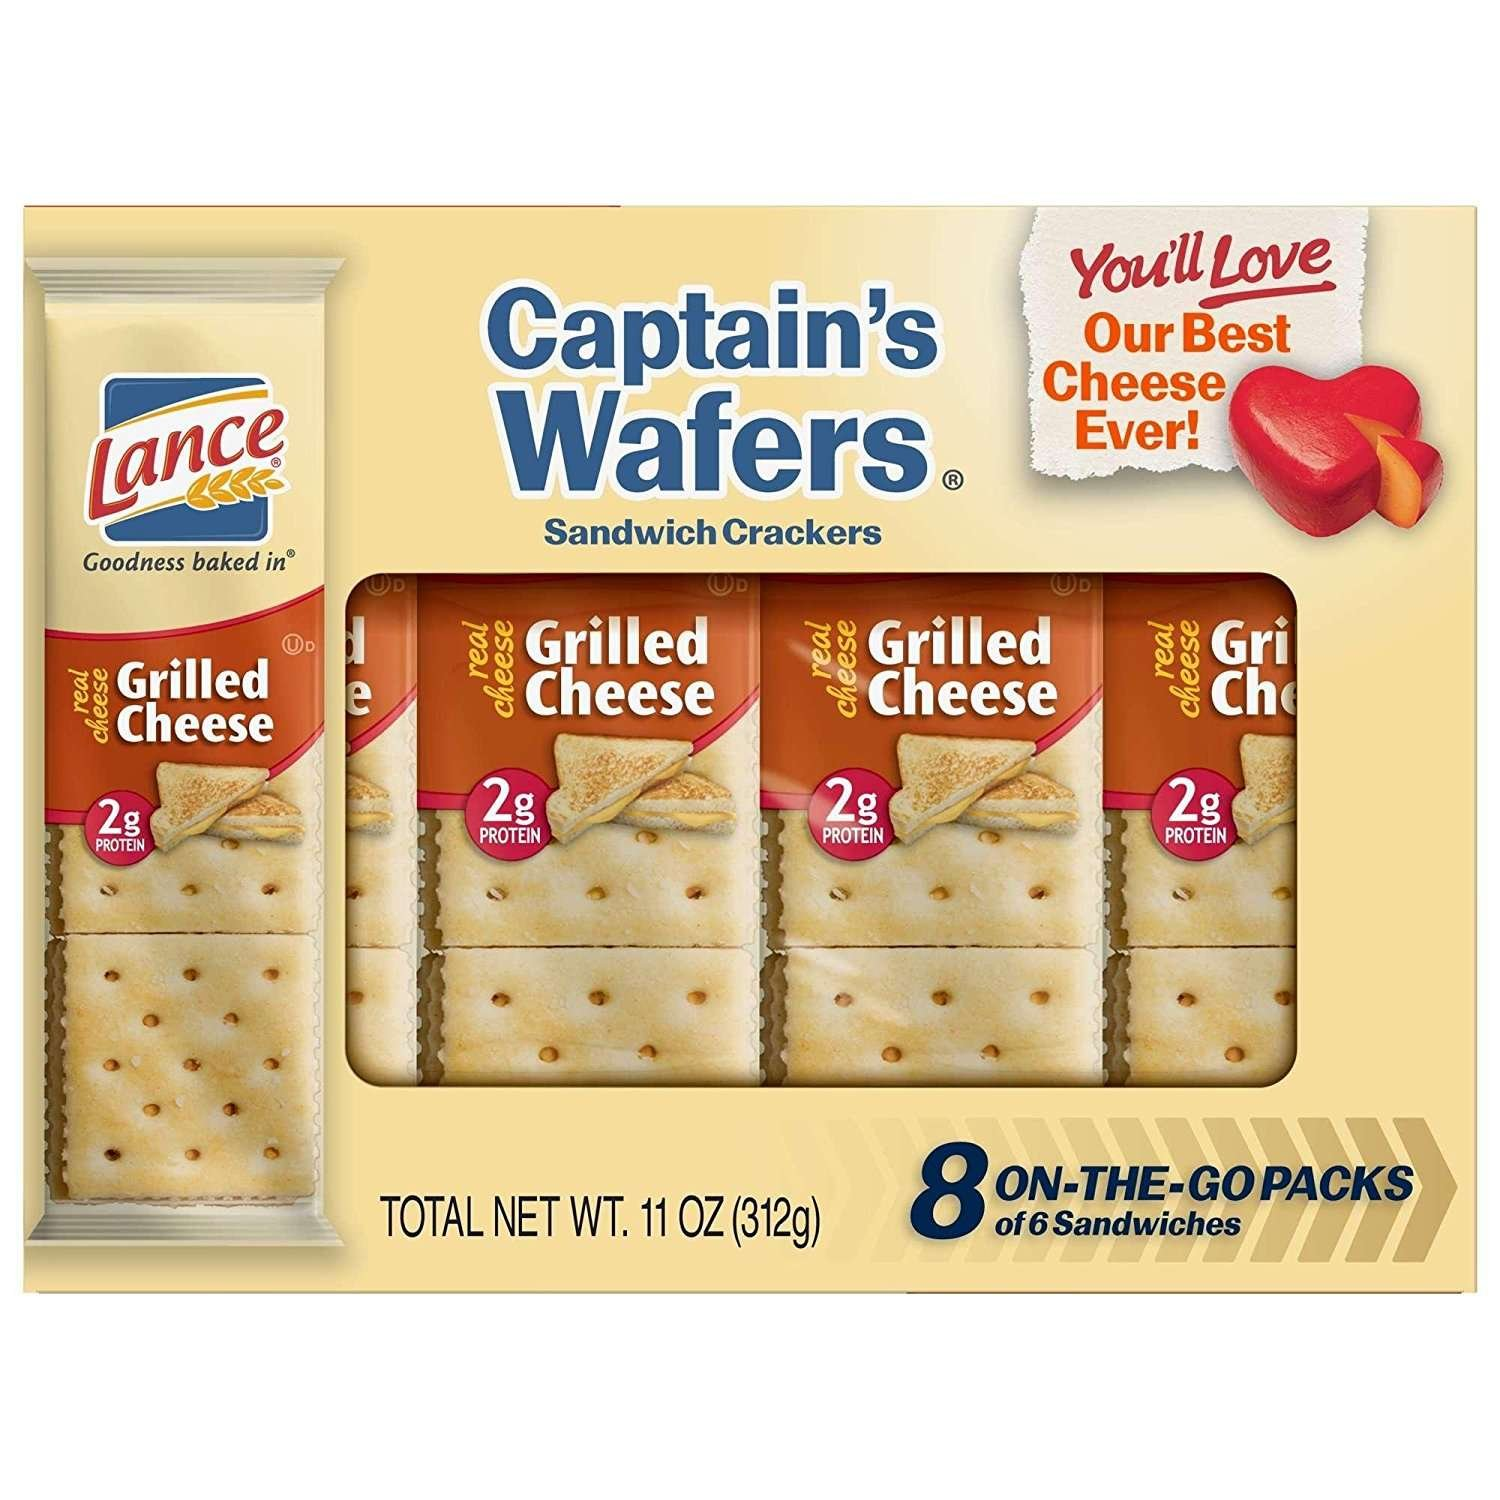 Lance Captain's Wafer Sandwich Crackers, Grilled Cheese, 8-Count (Pack of 14)